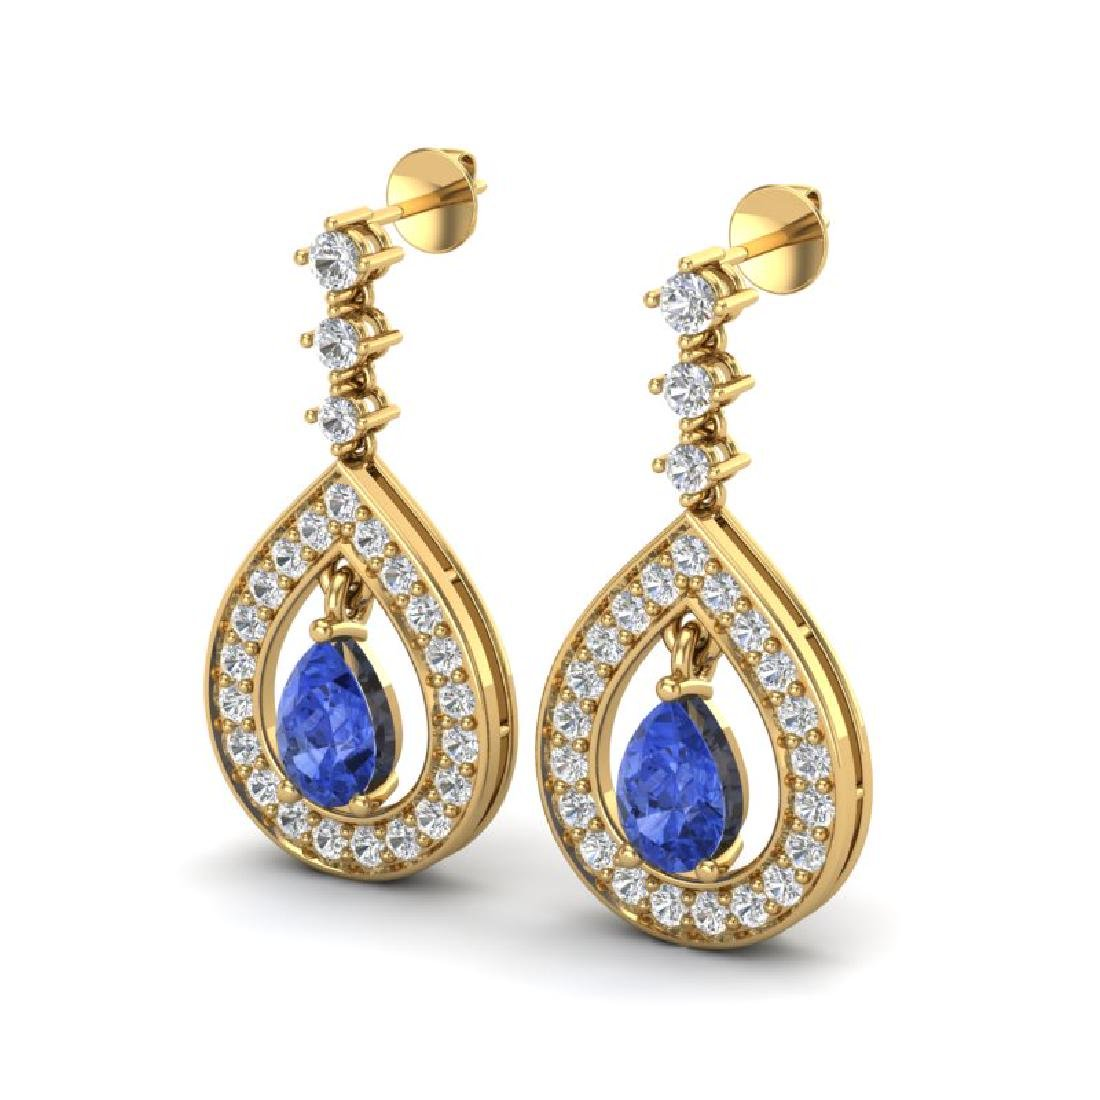 2.25 CTW Tanzanite & Micro Pave VS/SI Diamond Earrings